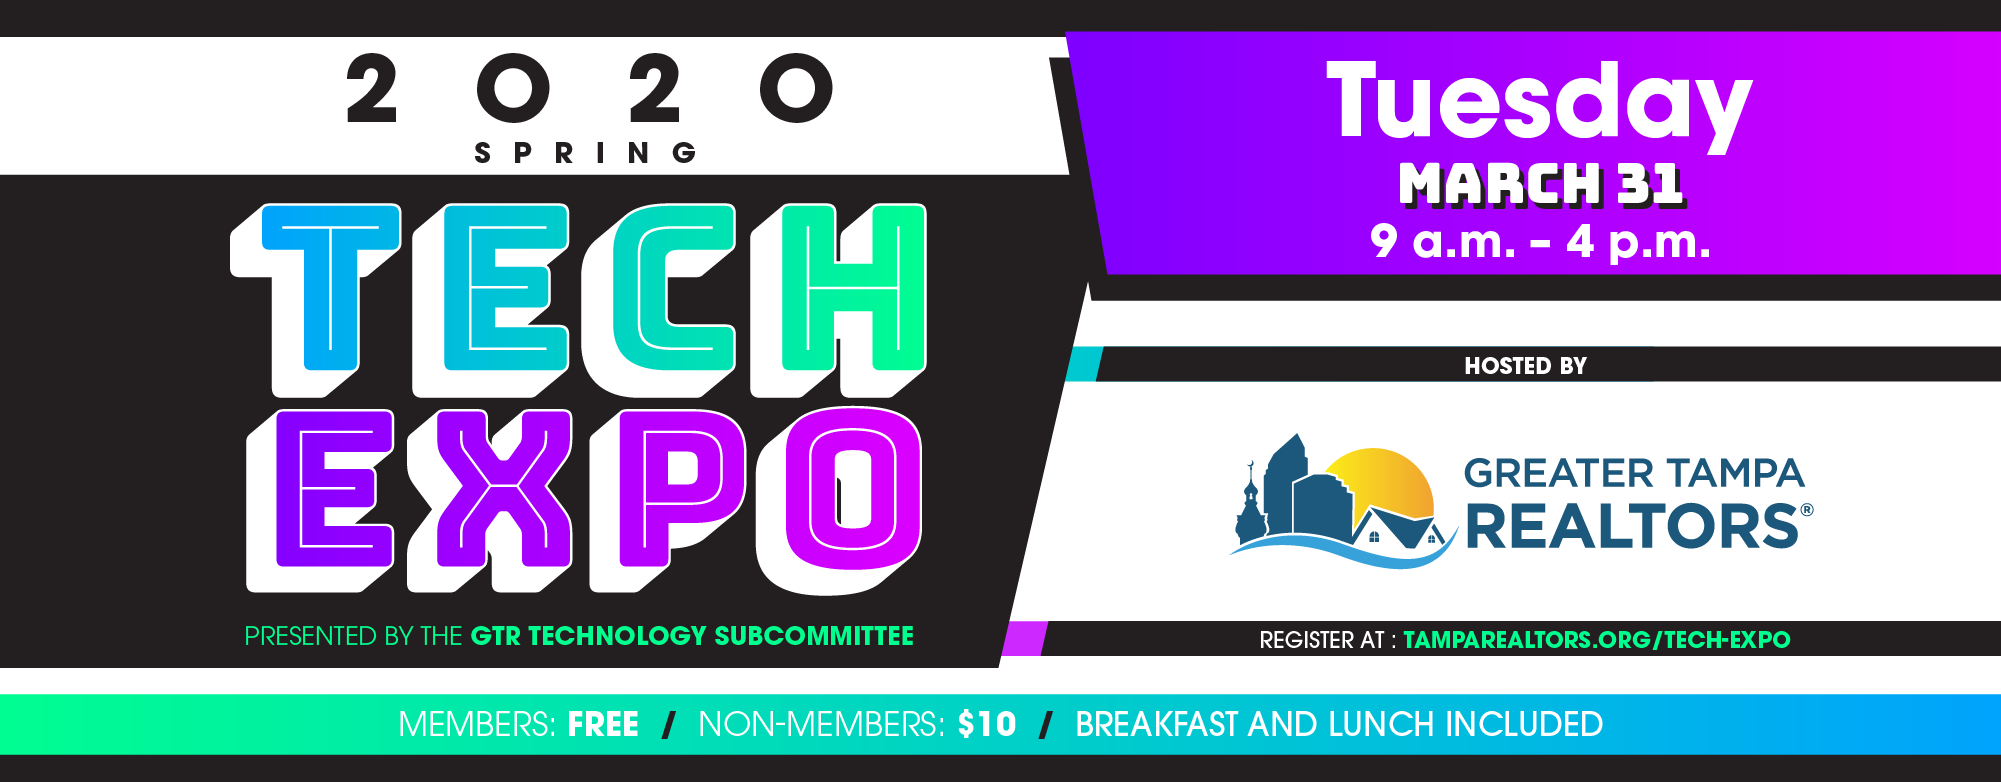 2020 Spring Tech Expo | March 31 | 9 a.m. to 4 p.m.